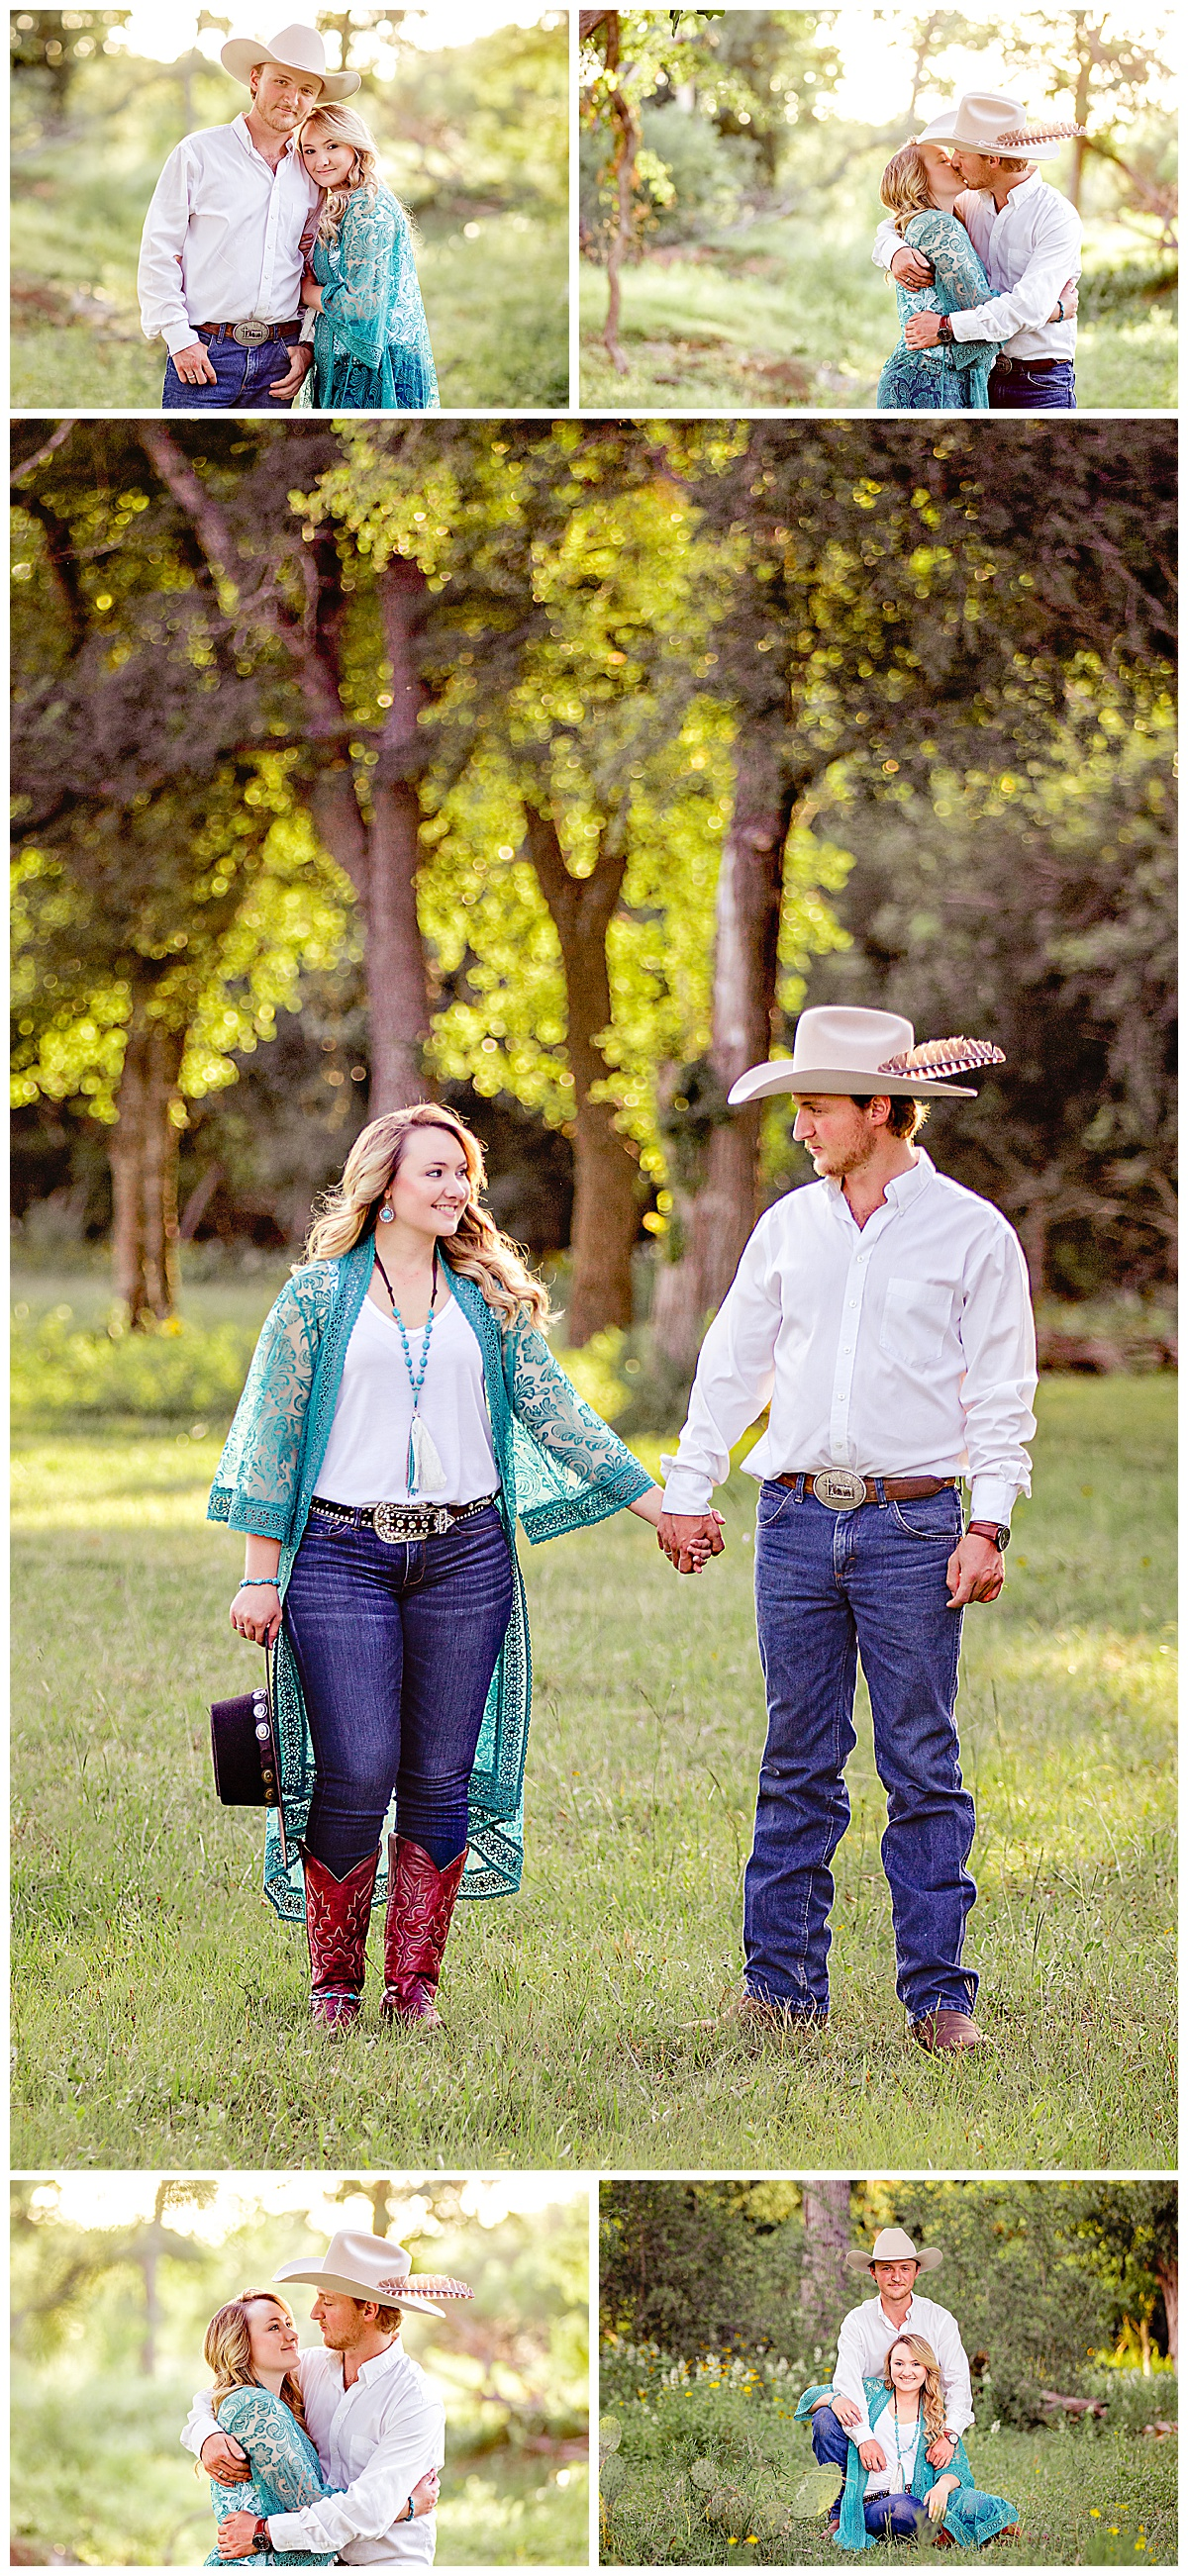 Rustic-Engagement-Session-Horse-Texas-Sunset-Carly-Barton-Photography_0015.jpg